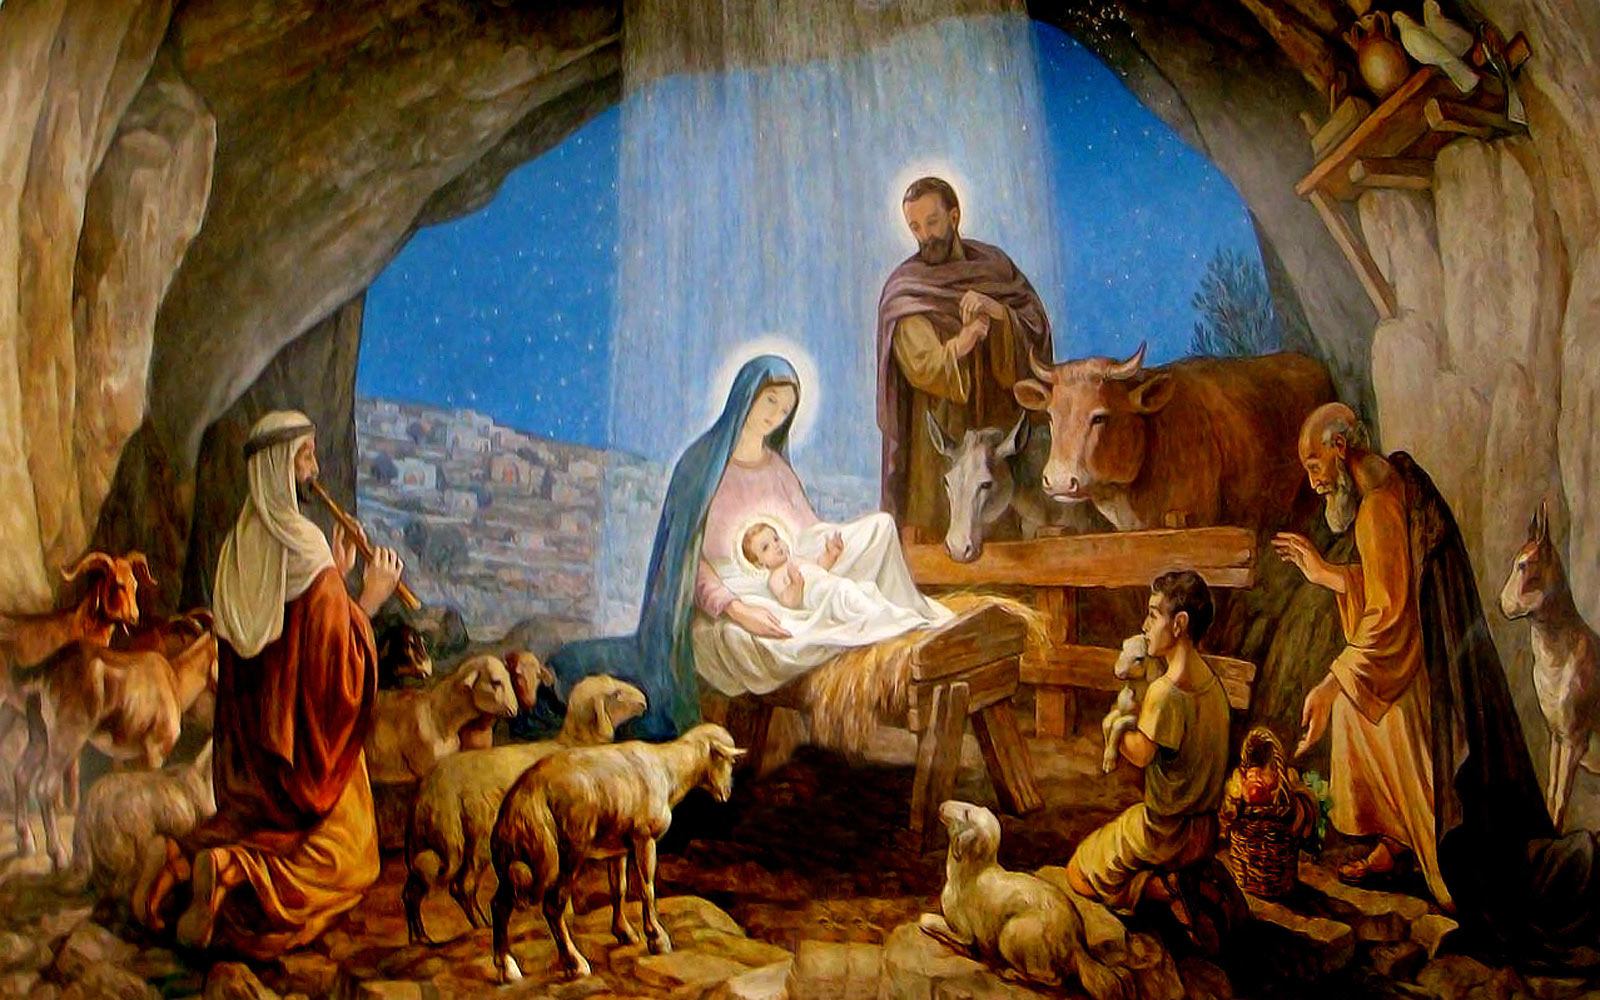 The Truth of the Nativity | For the Love of His Truth